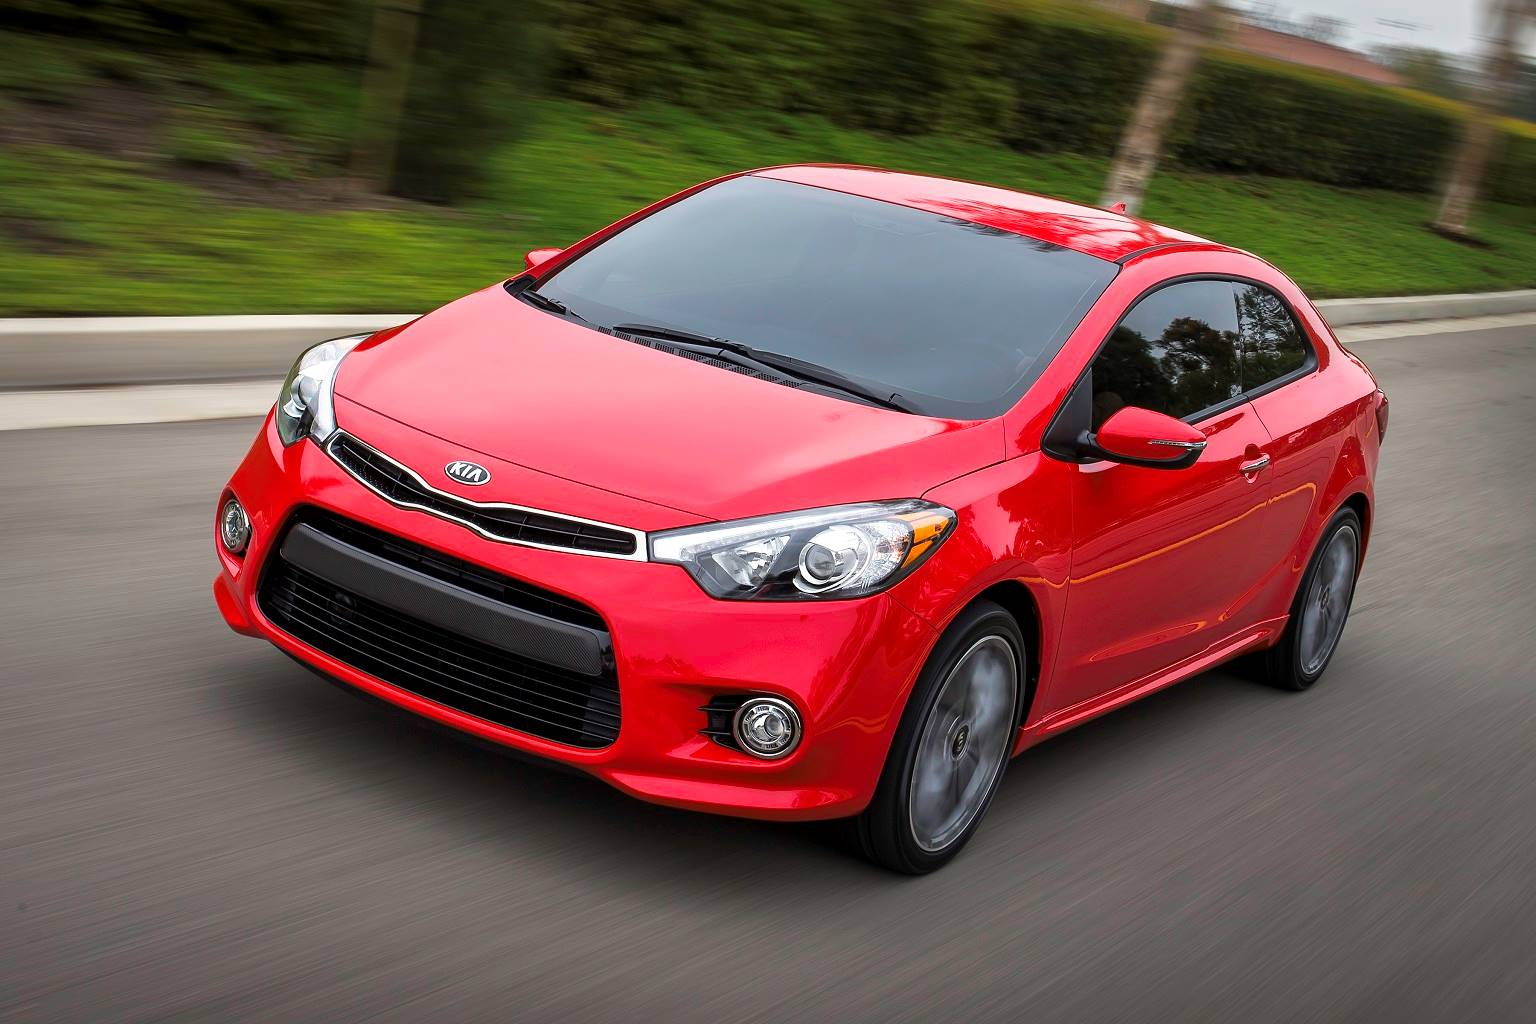 ... 2014 Kia Forte. Starting From $11,310 24 City / 36 Highway Mpg